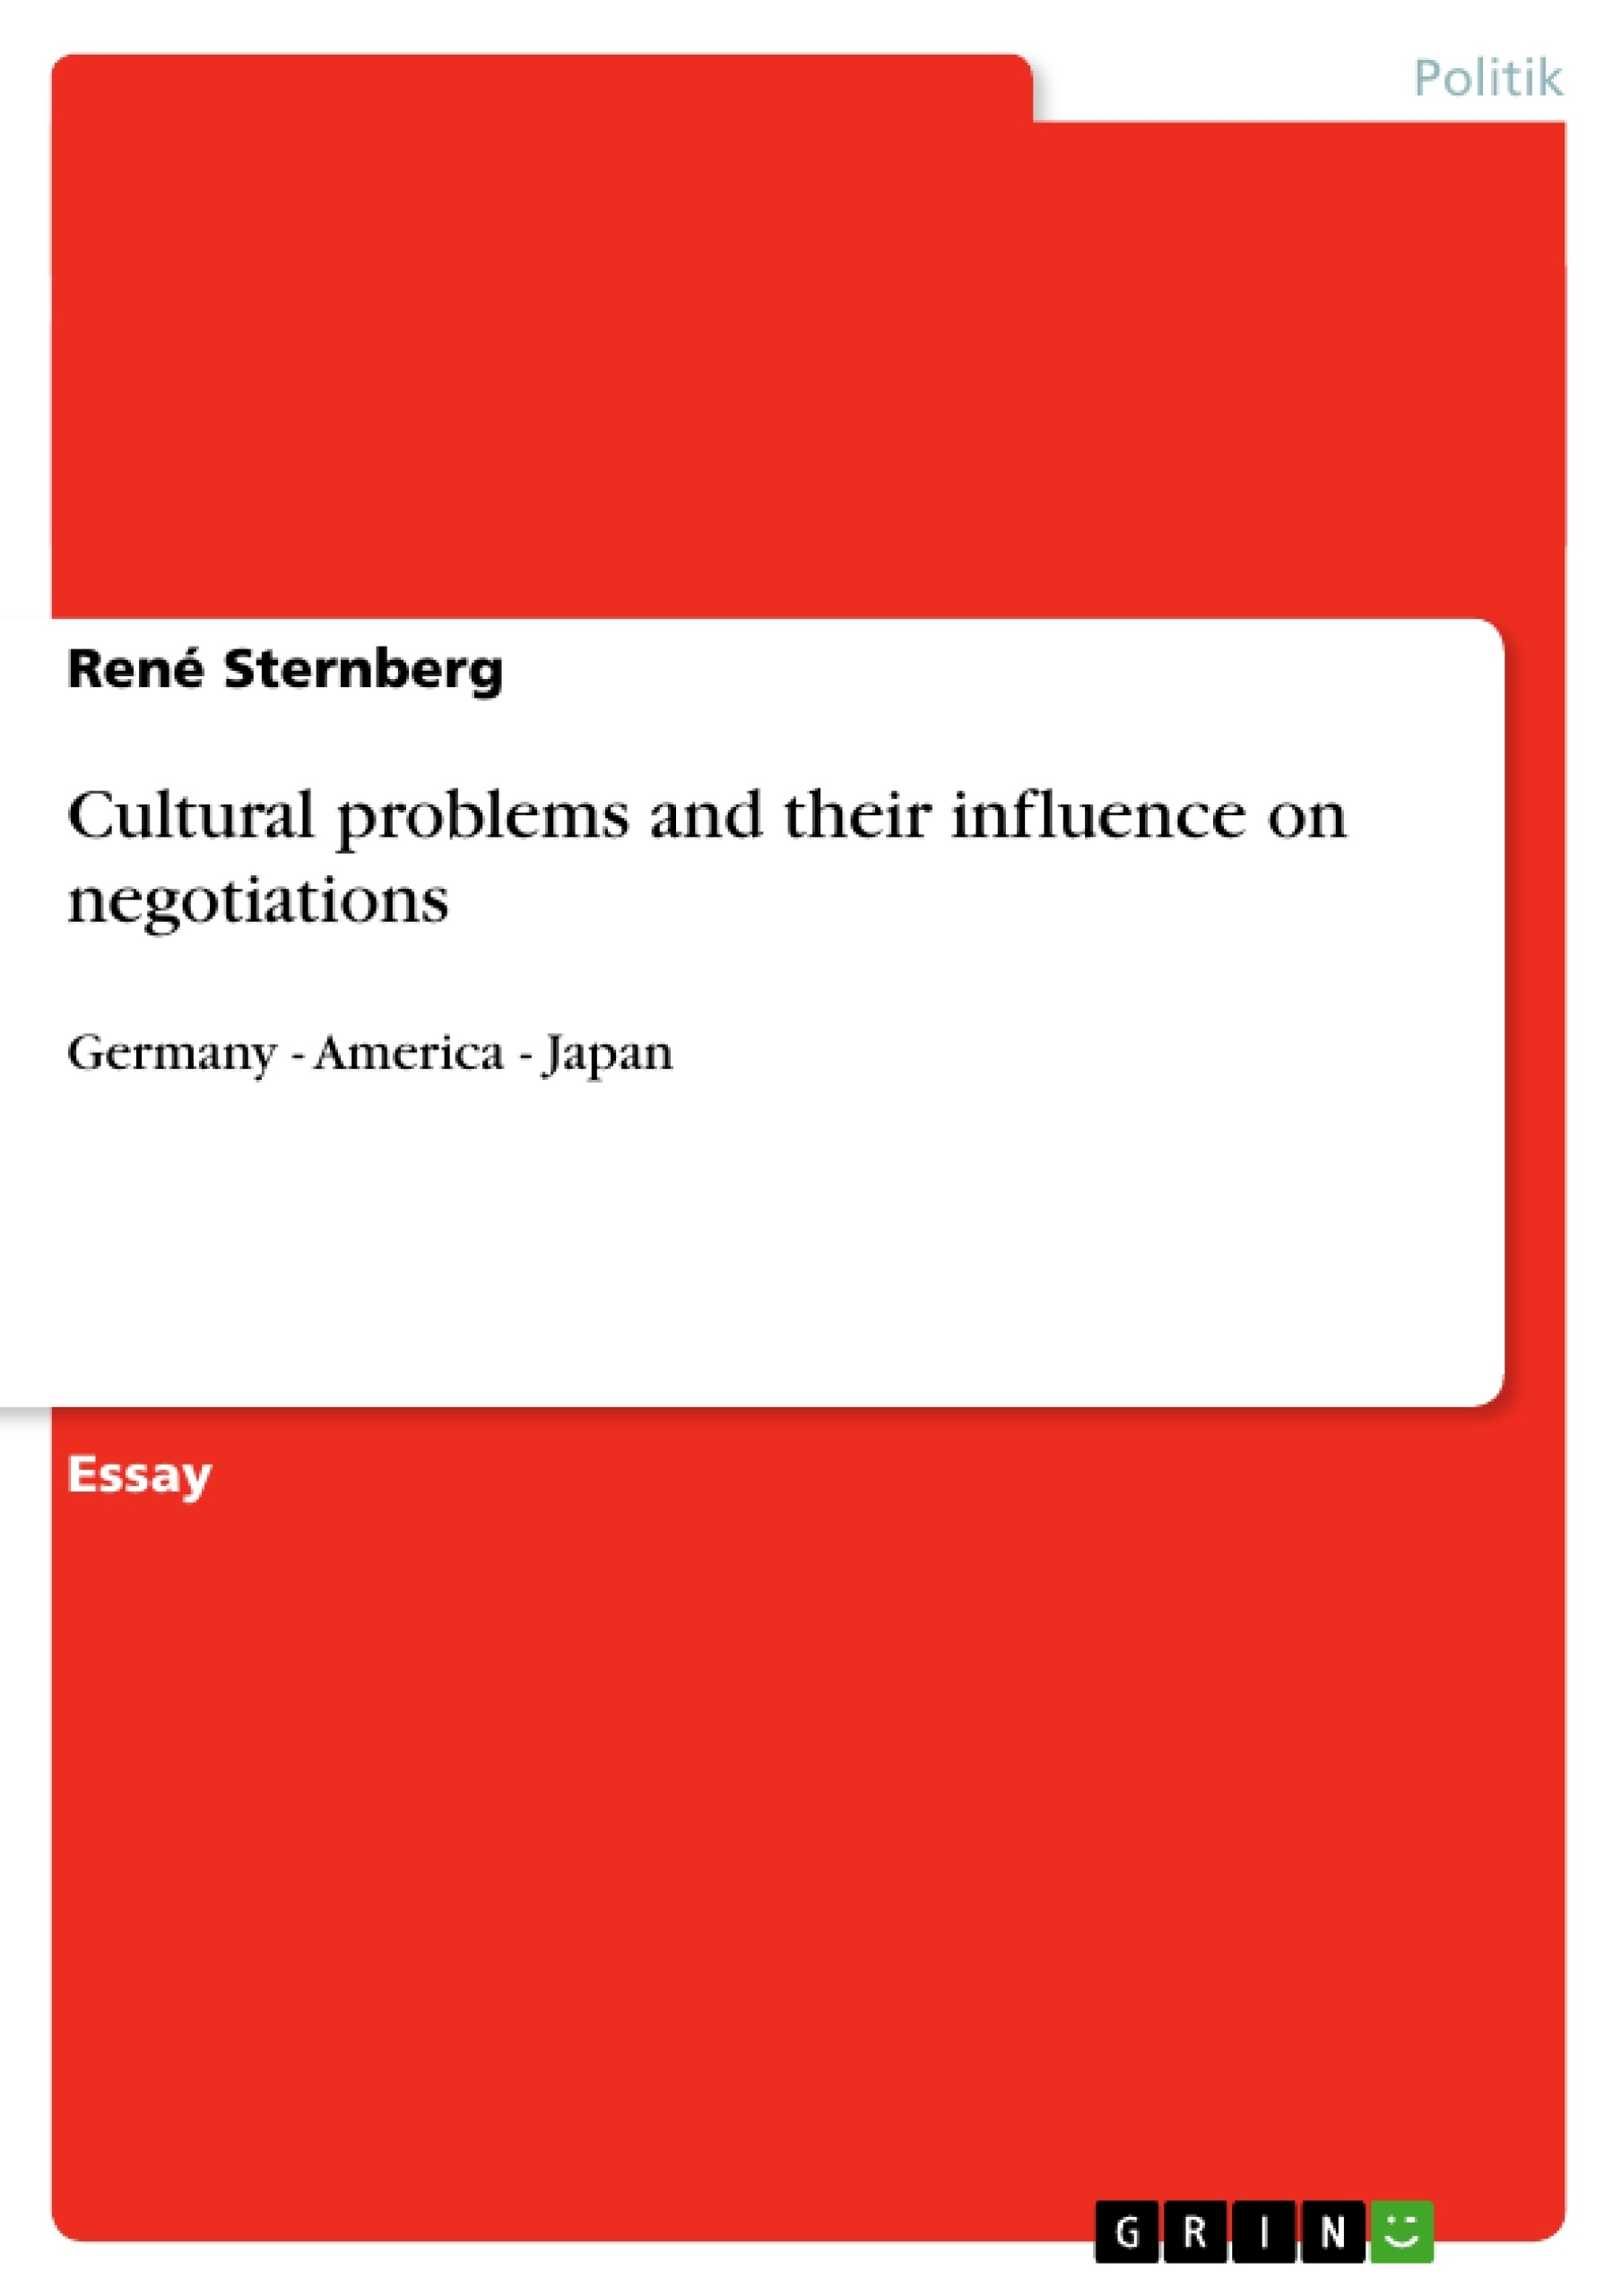 Titel: Cultural problems and their influence on negotiations